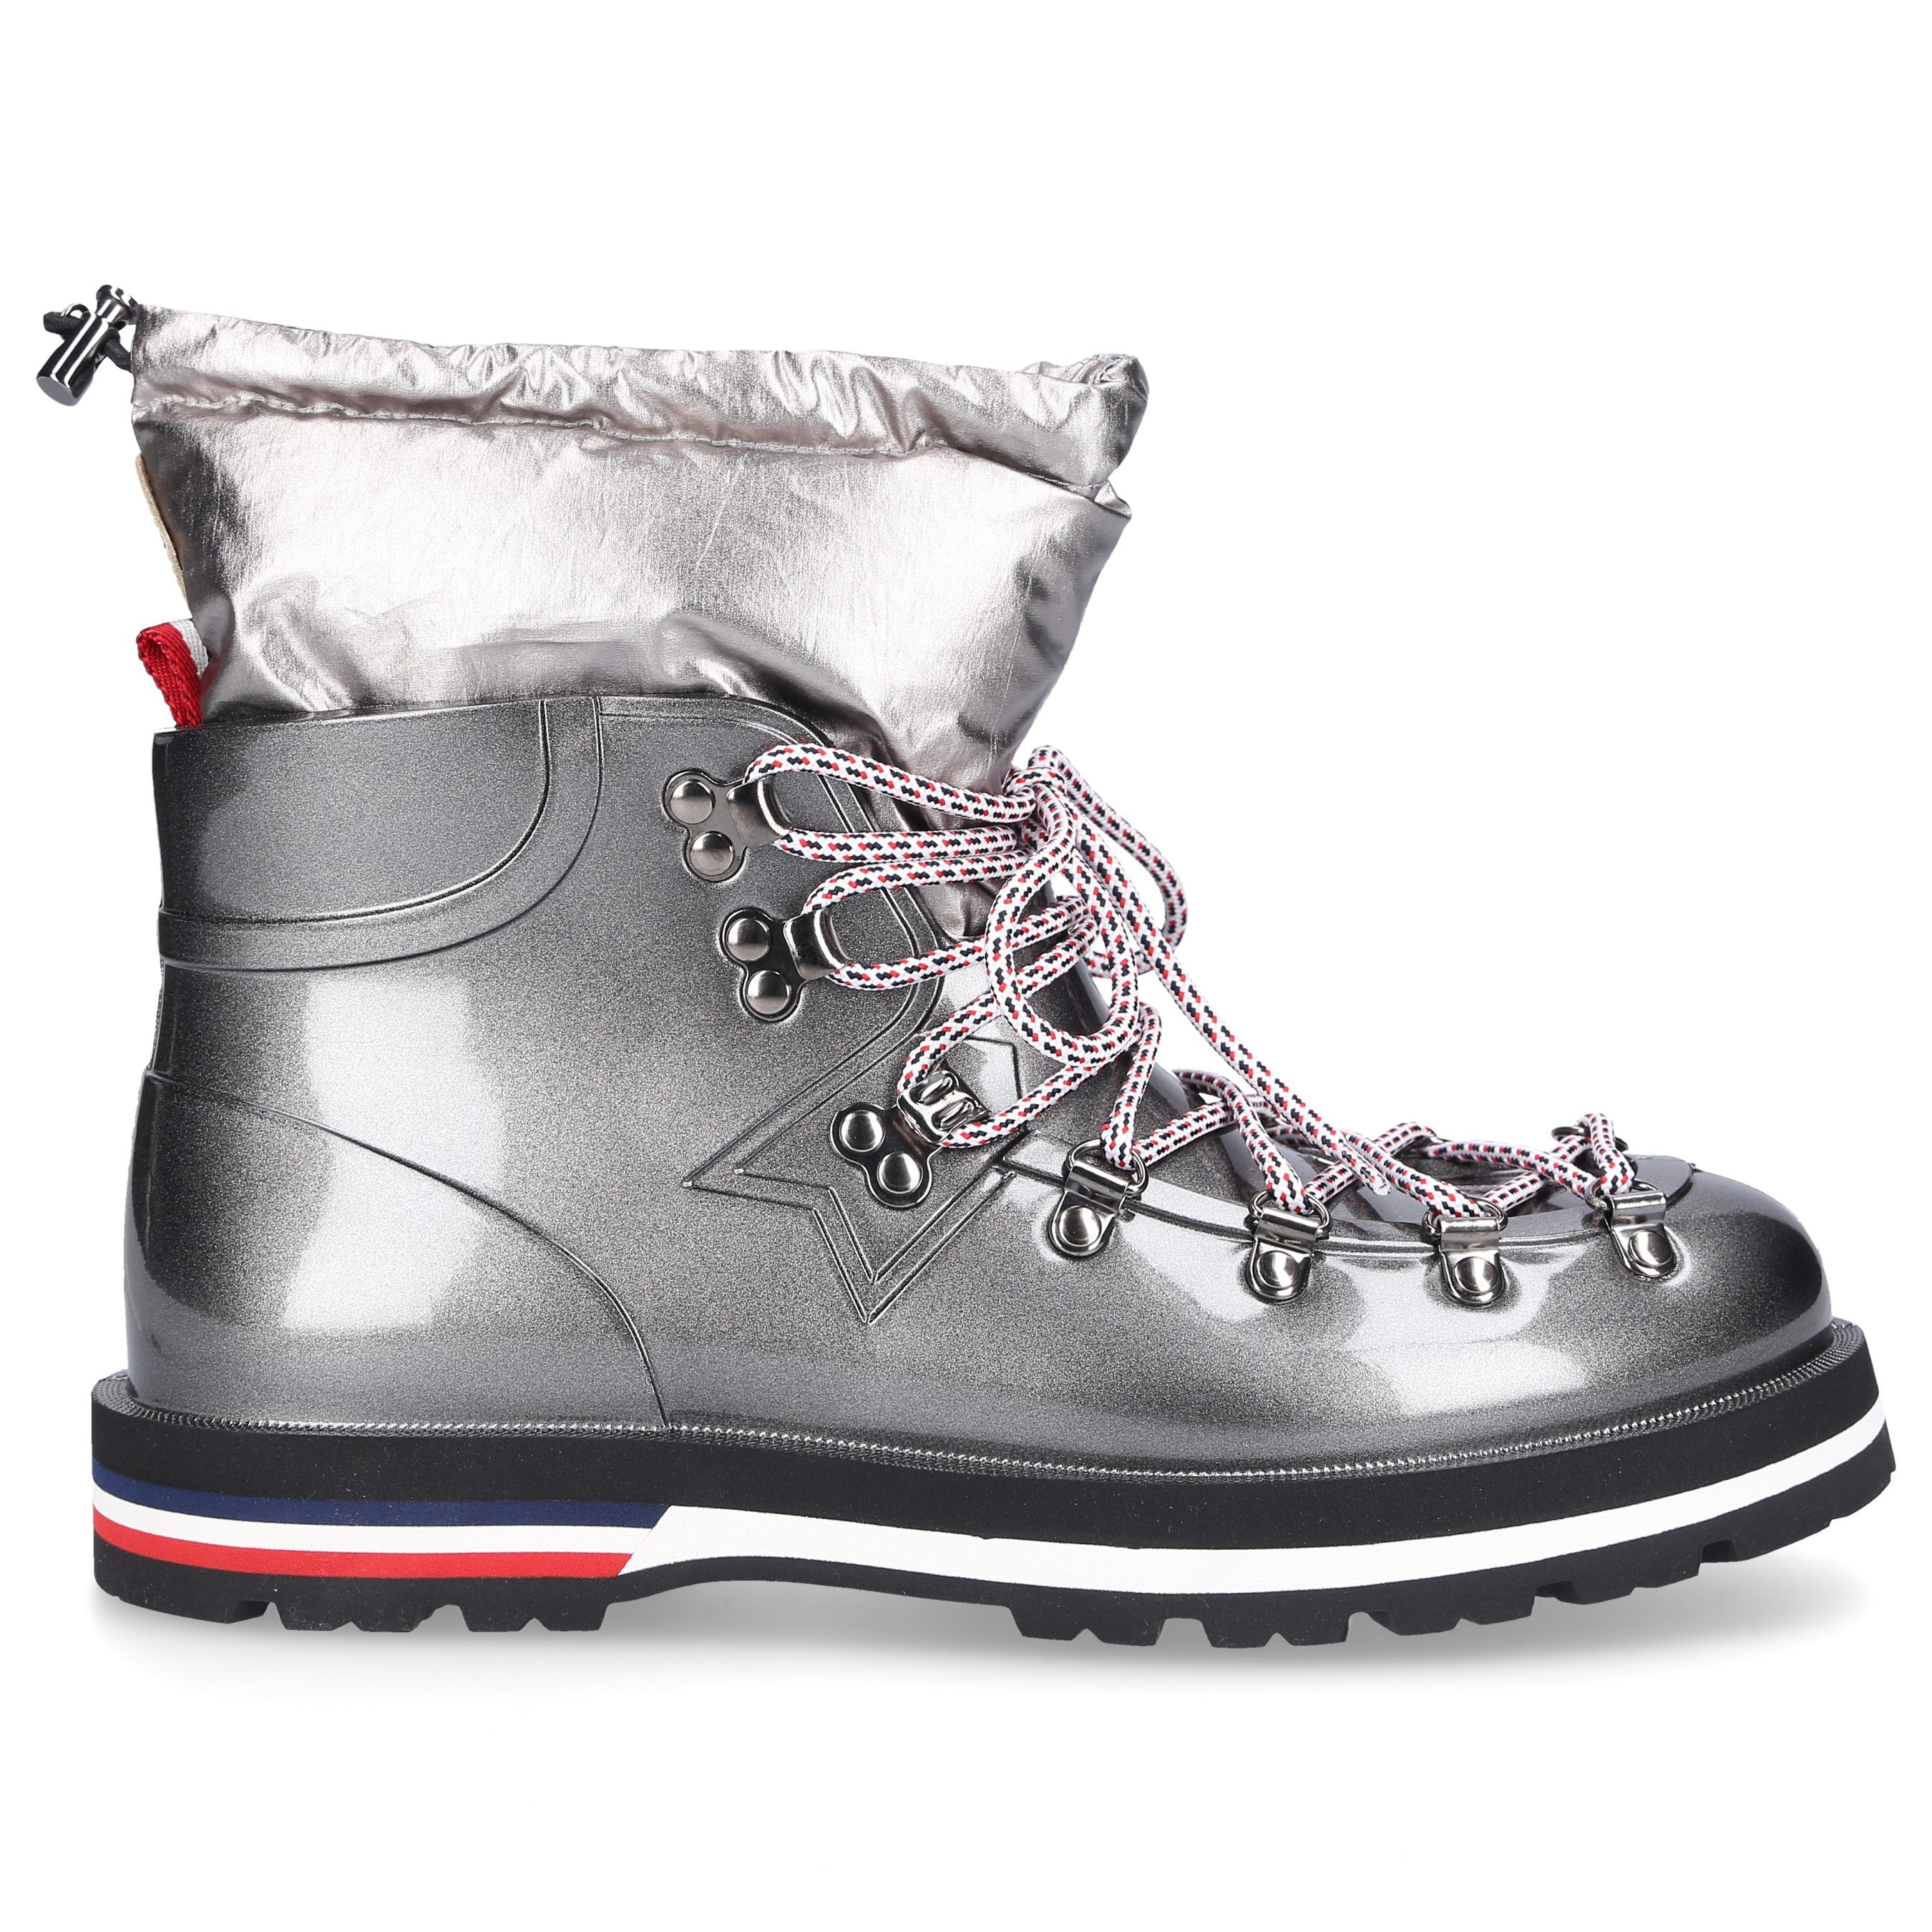 Moncler ANKLE BOOTS INAYA GUM LOGO GREY